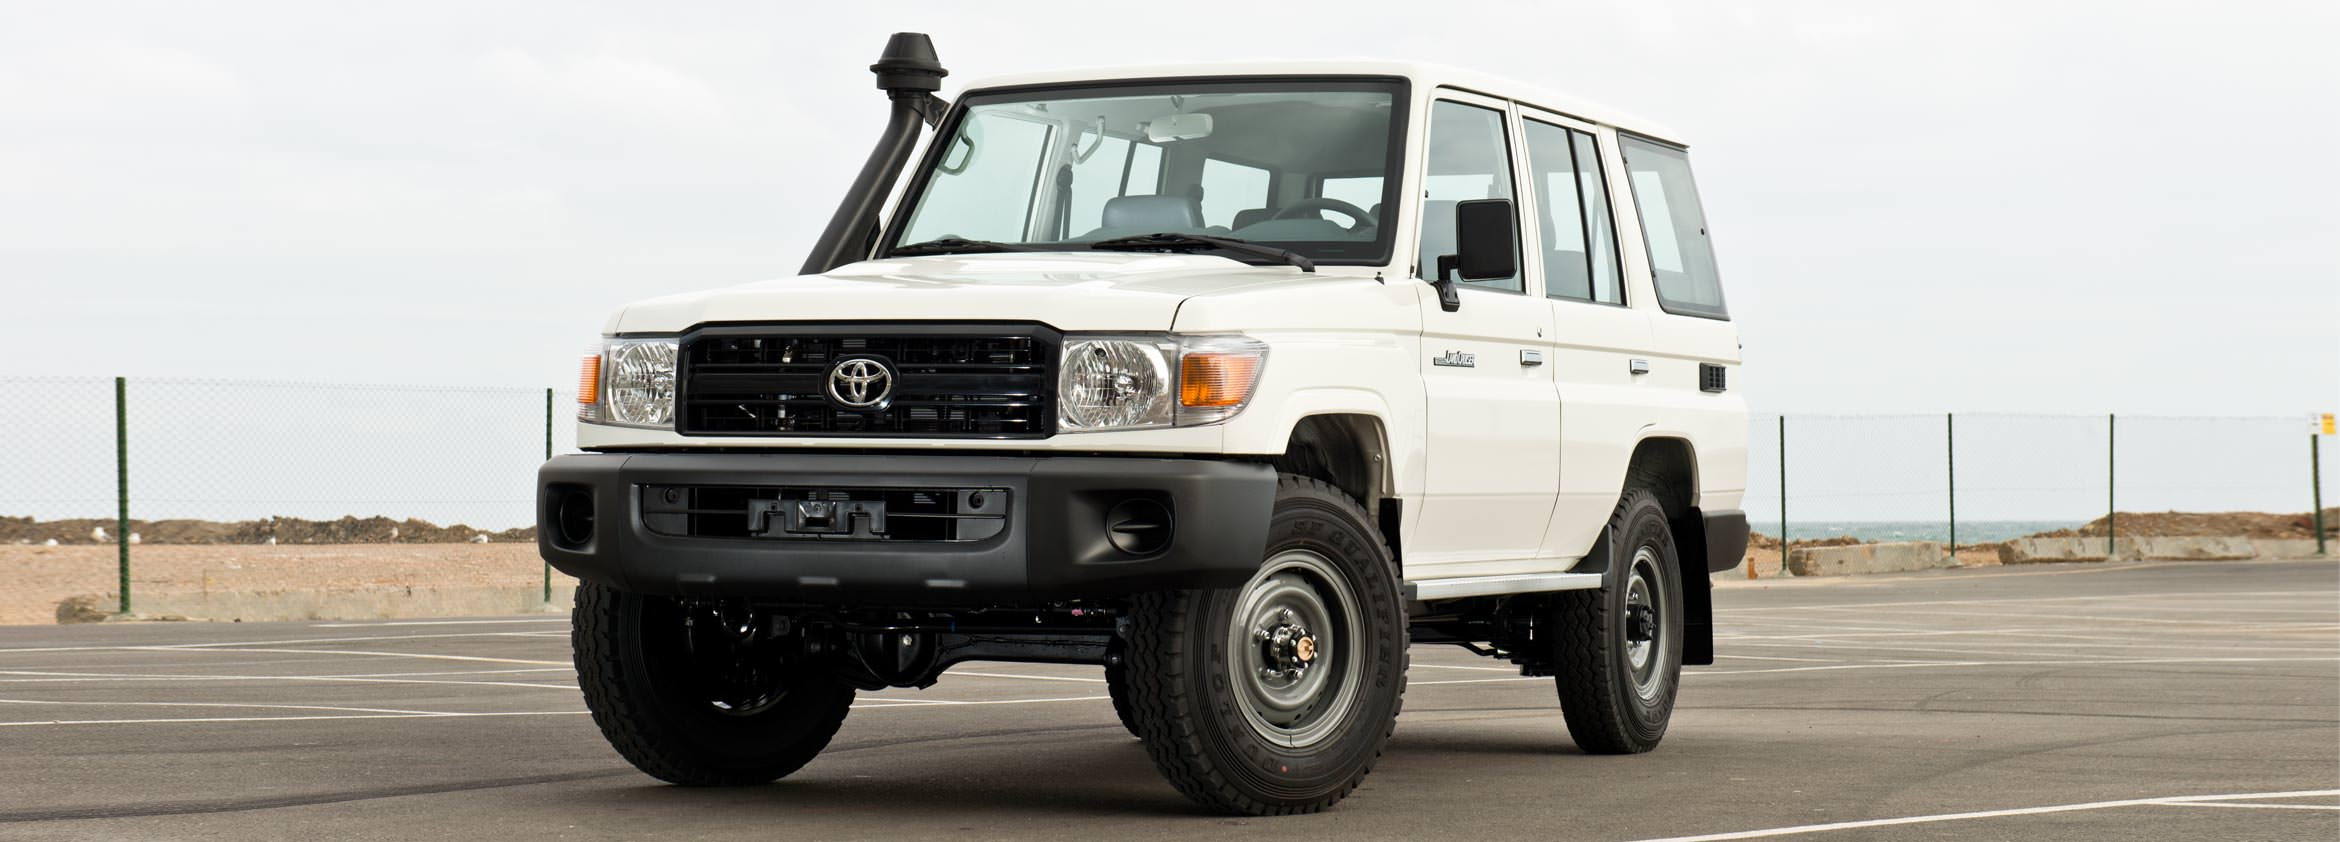 LANDCRUISER 13 HARD TOP PERSONNEL CARRIER